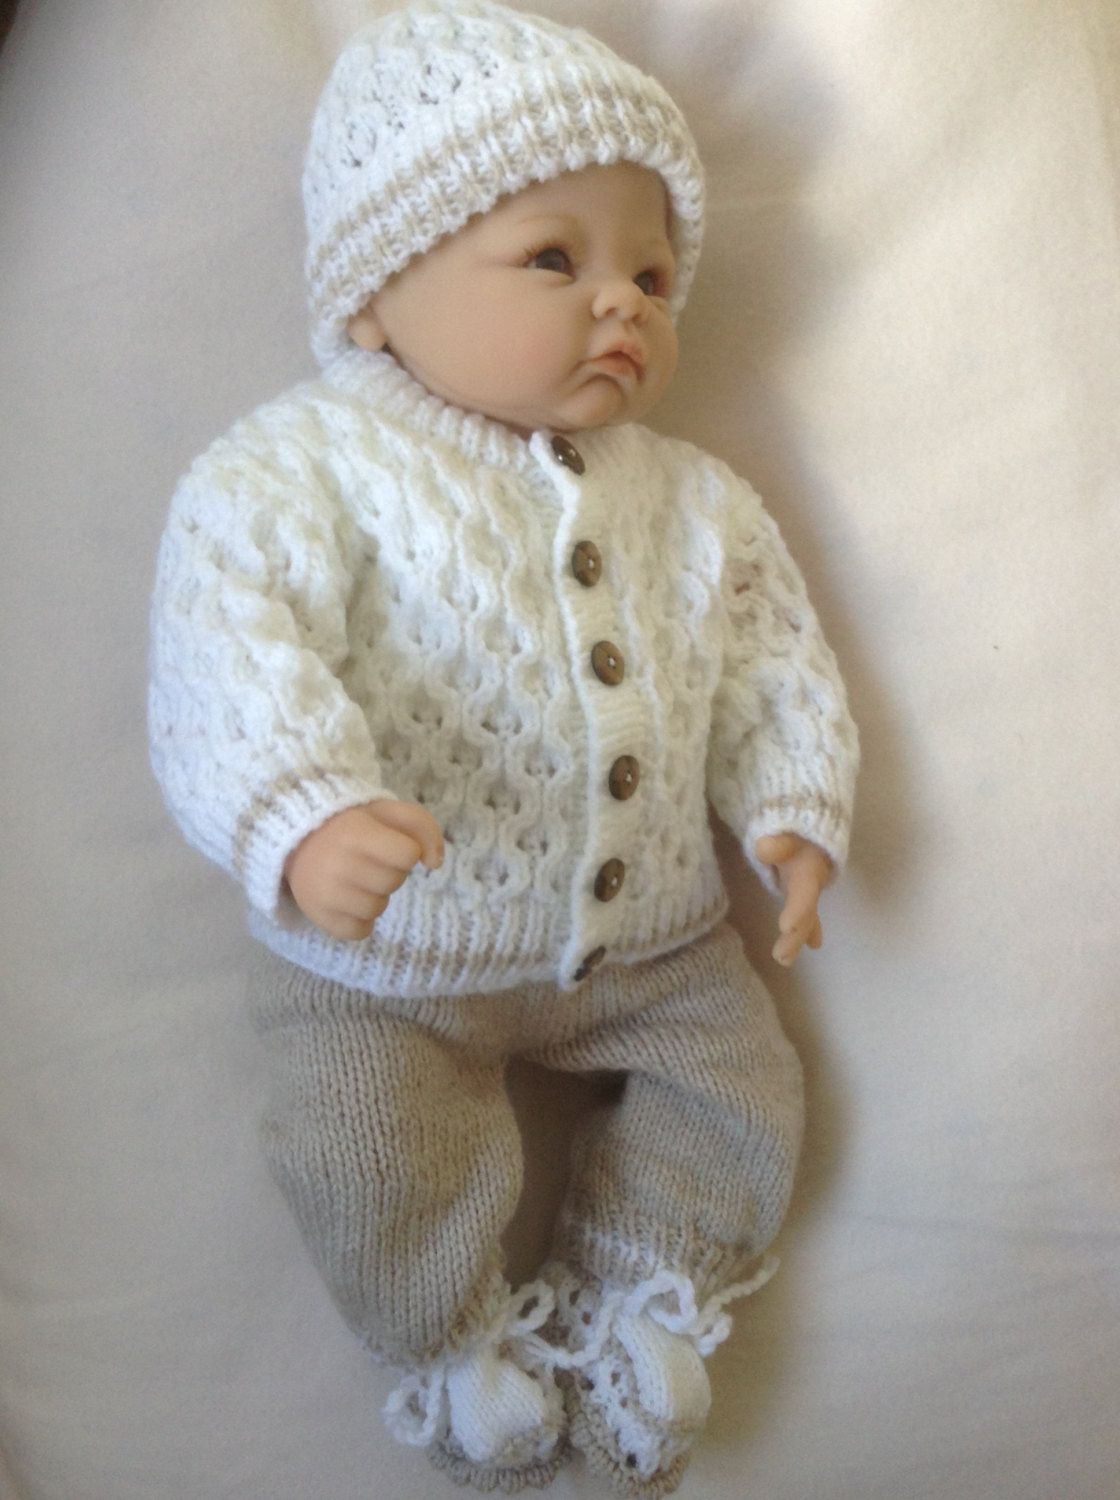 6d4bcd235092 Newborn Baby Sweater Outfit or will fit a 18-20 inch Reborn Baby ...